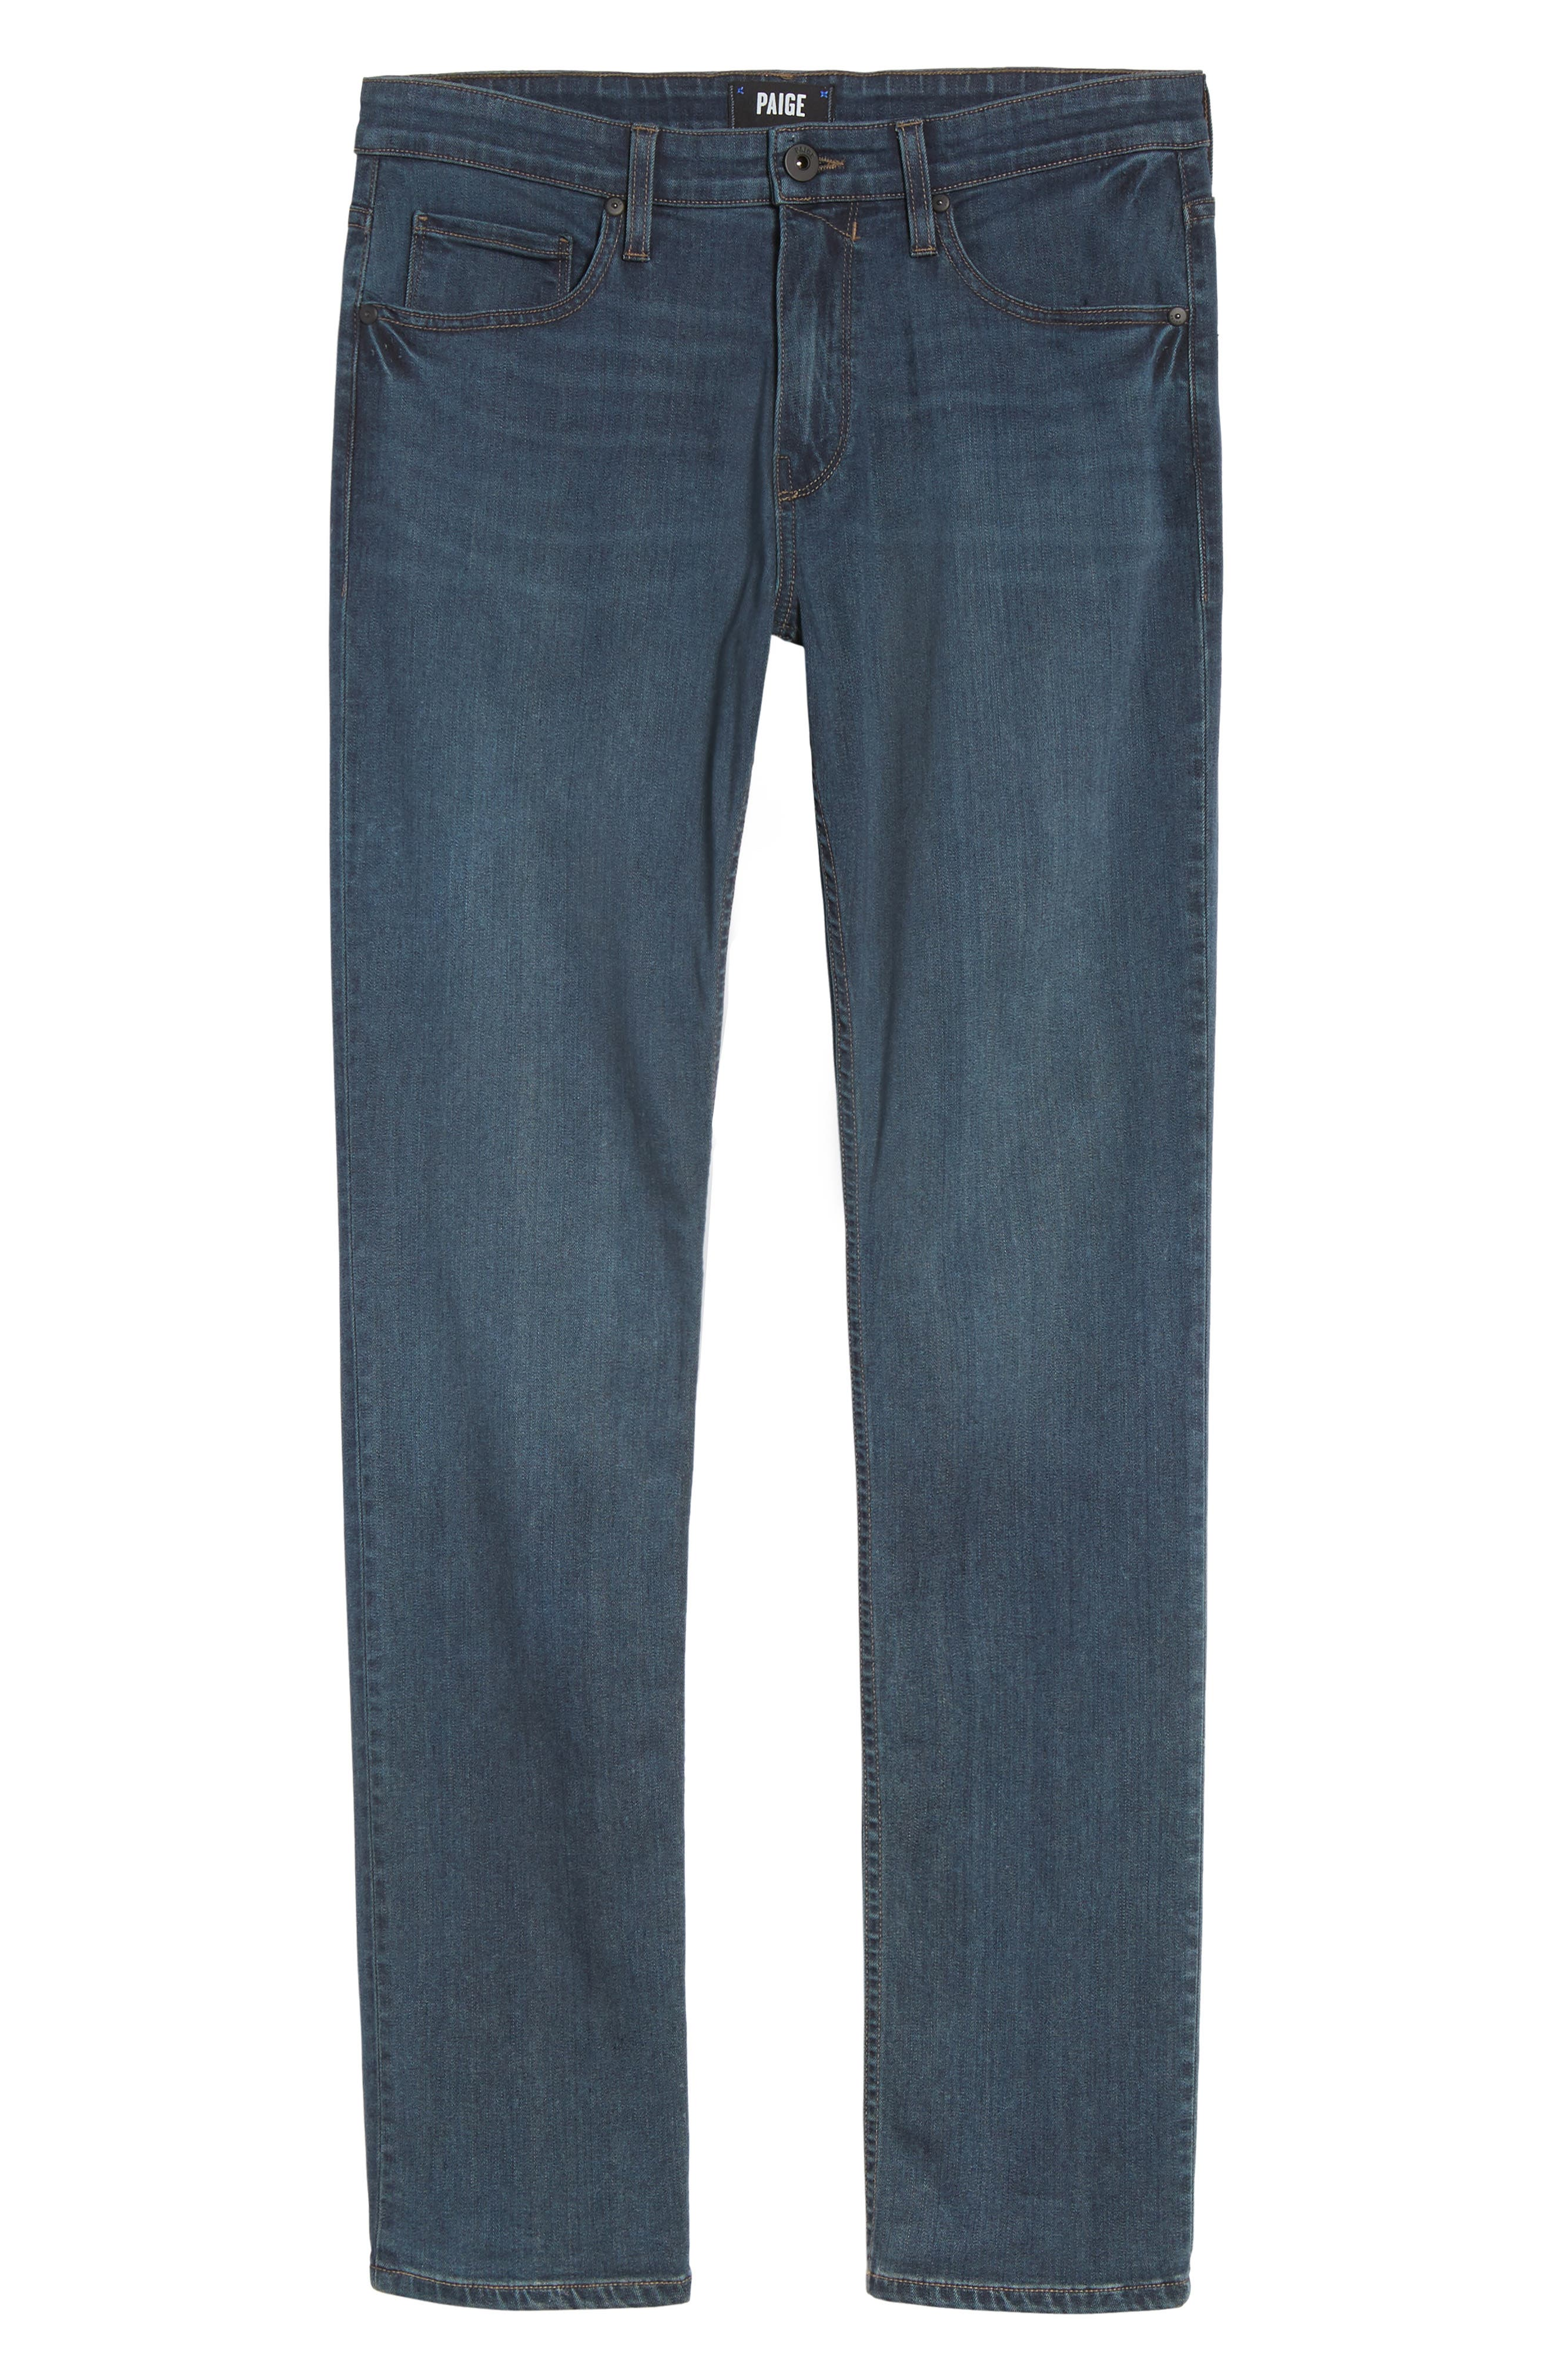 Federal Slim Straight Fit Jeans,                             Alternate thumbnail 6, color,                             Points